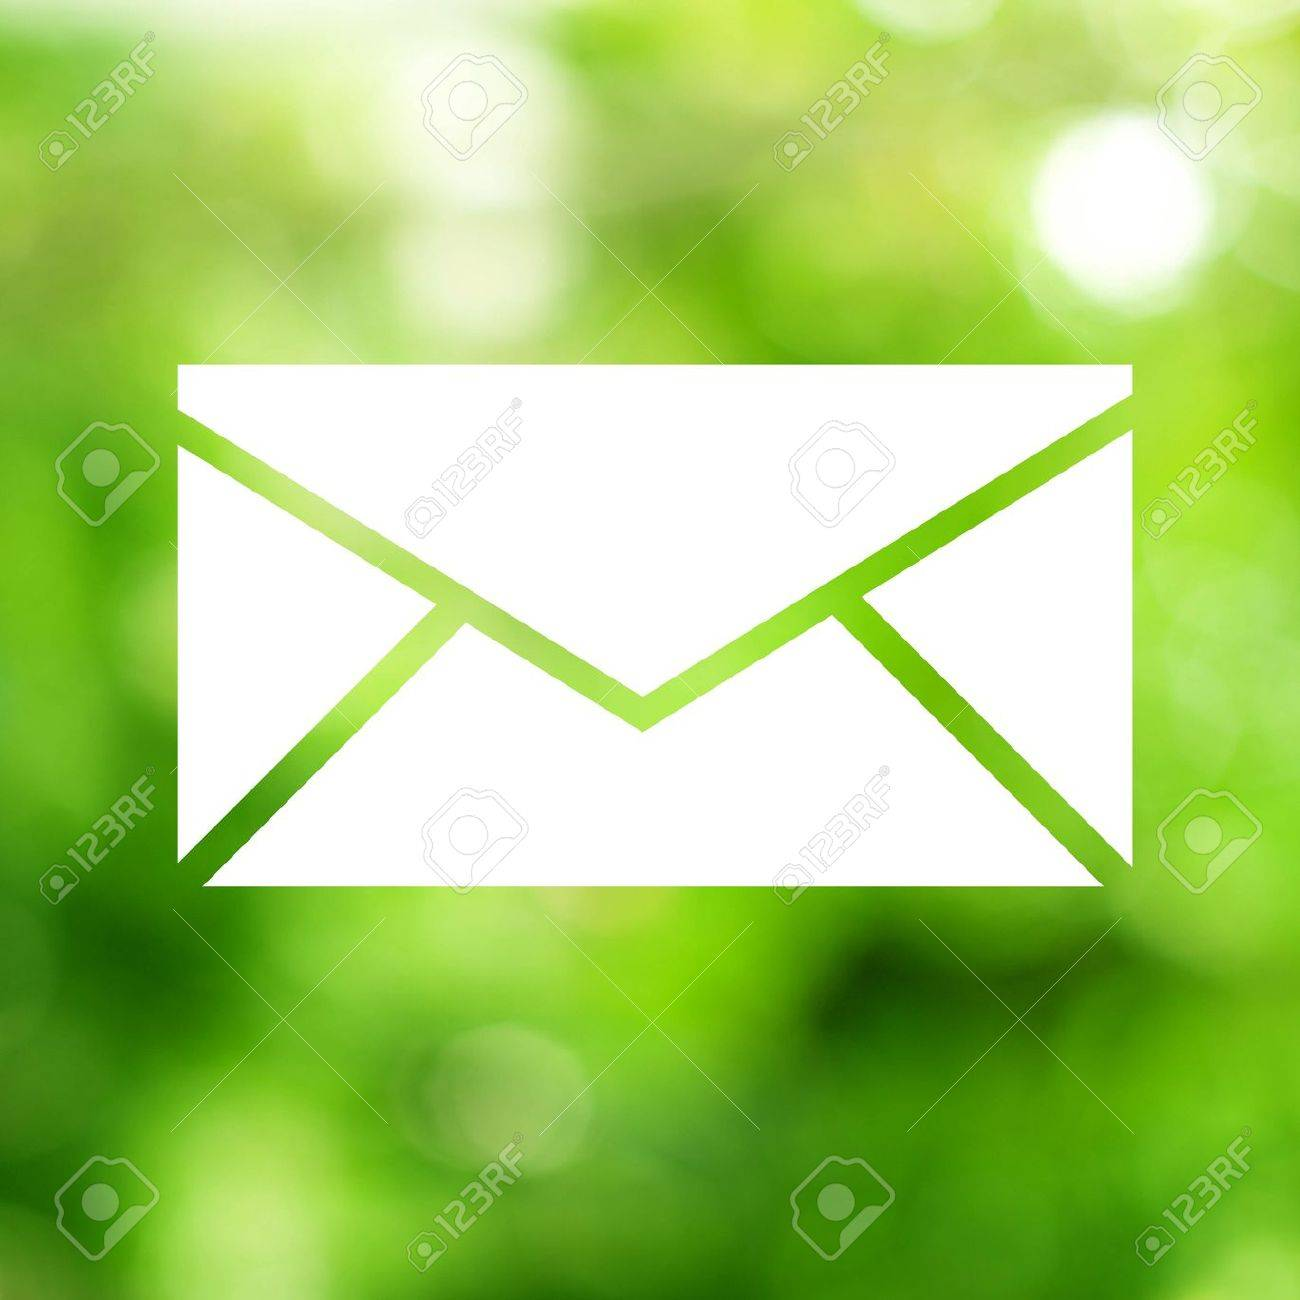 Email background image - Email Icon In Green Background Stock Photo 11368261